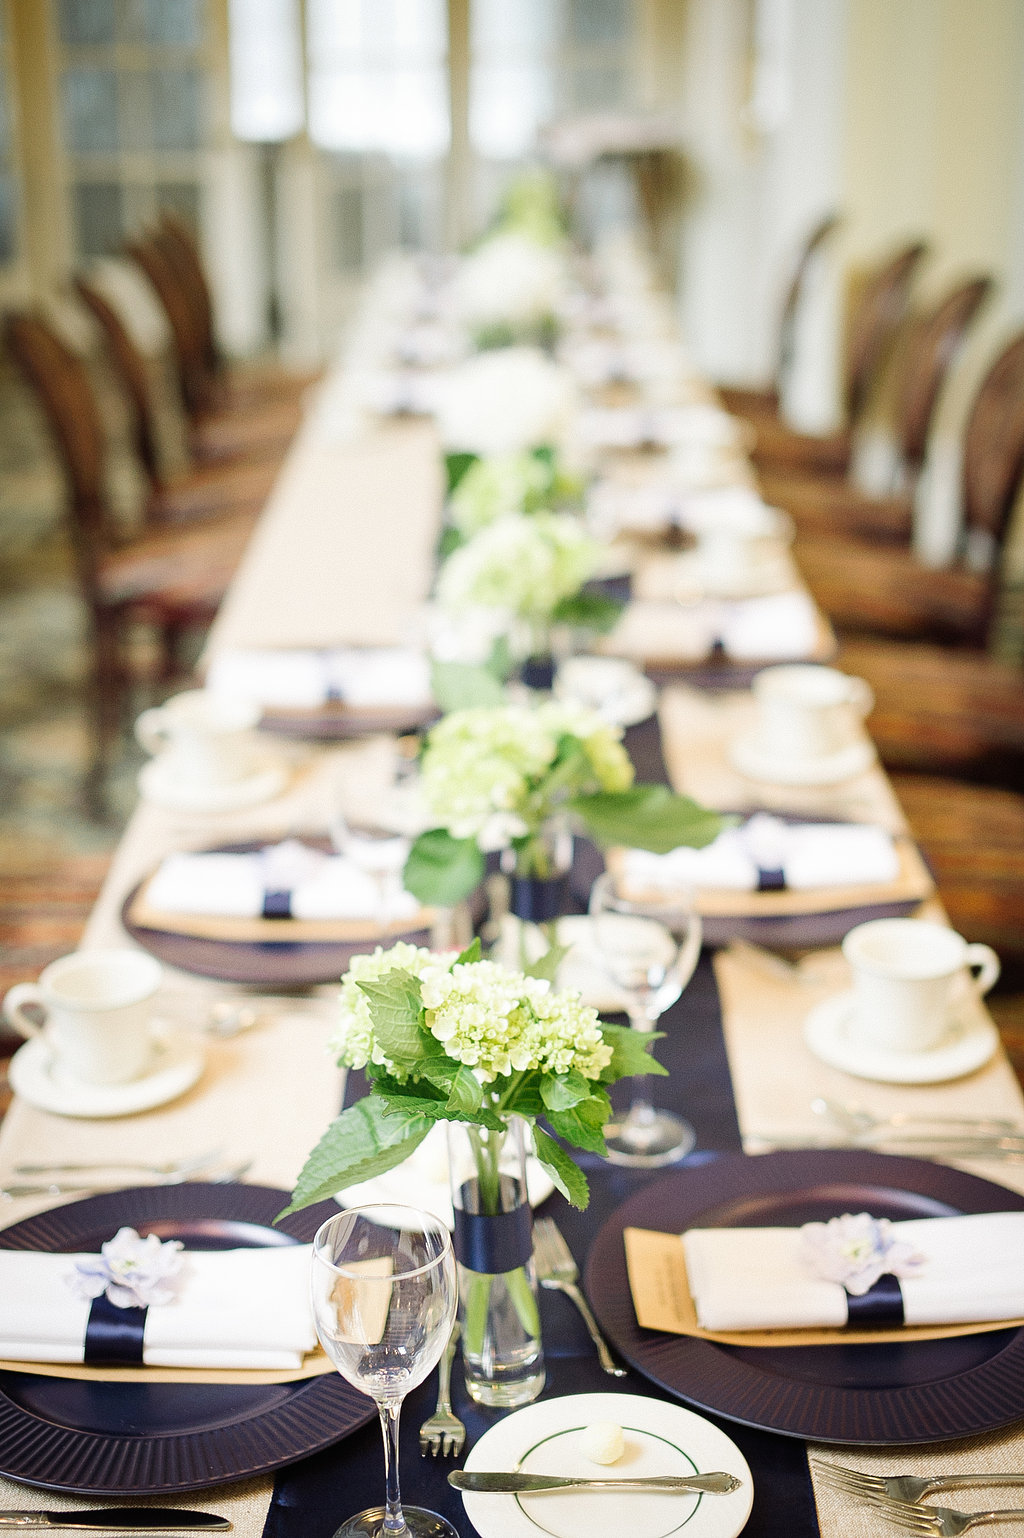 For this wedding the bride and groom did a modified head table, so we did small cylinder bud vases with a stripe of satin navy ribbon filled with small bouquets of green and white hydrangea over a matching navy satin runner.